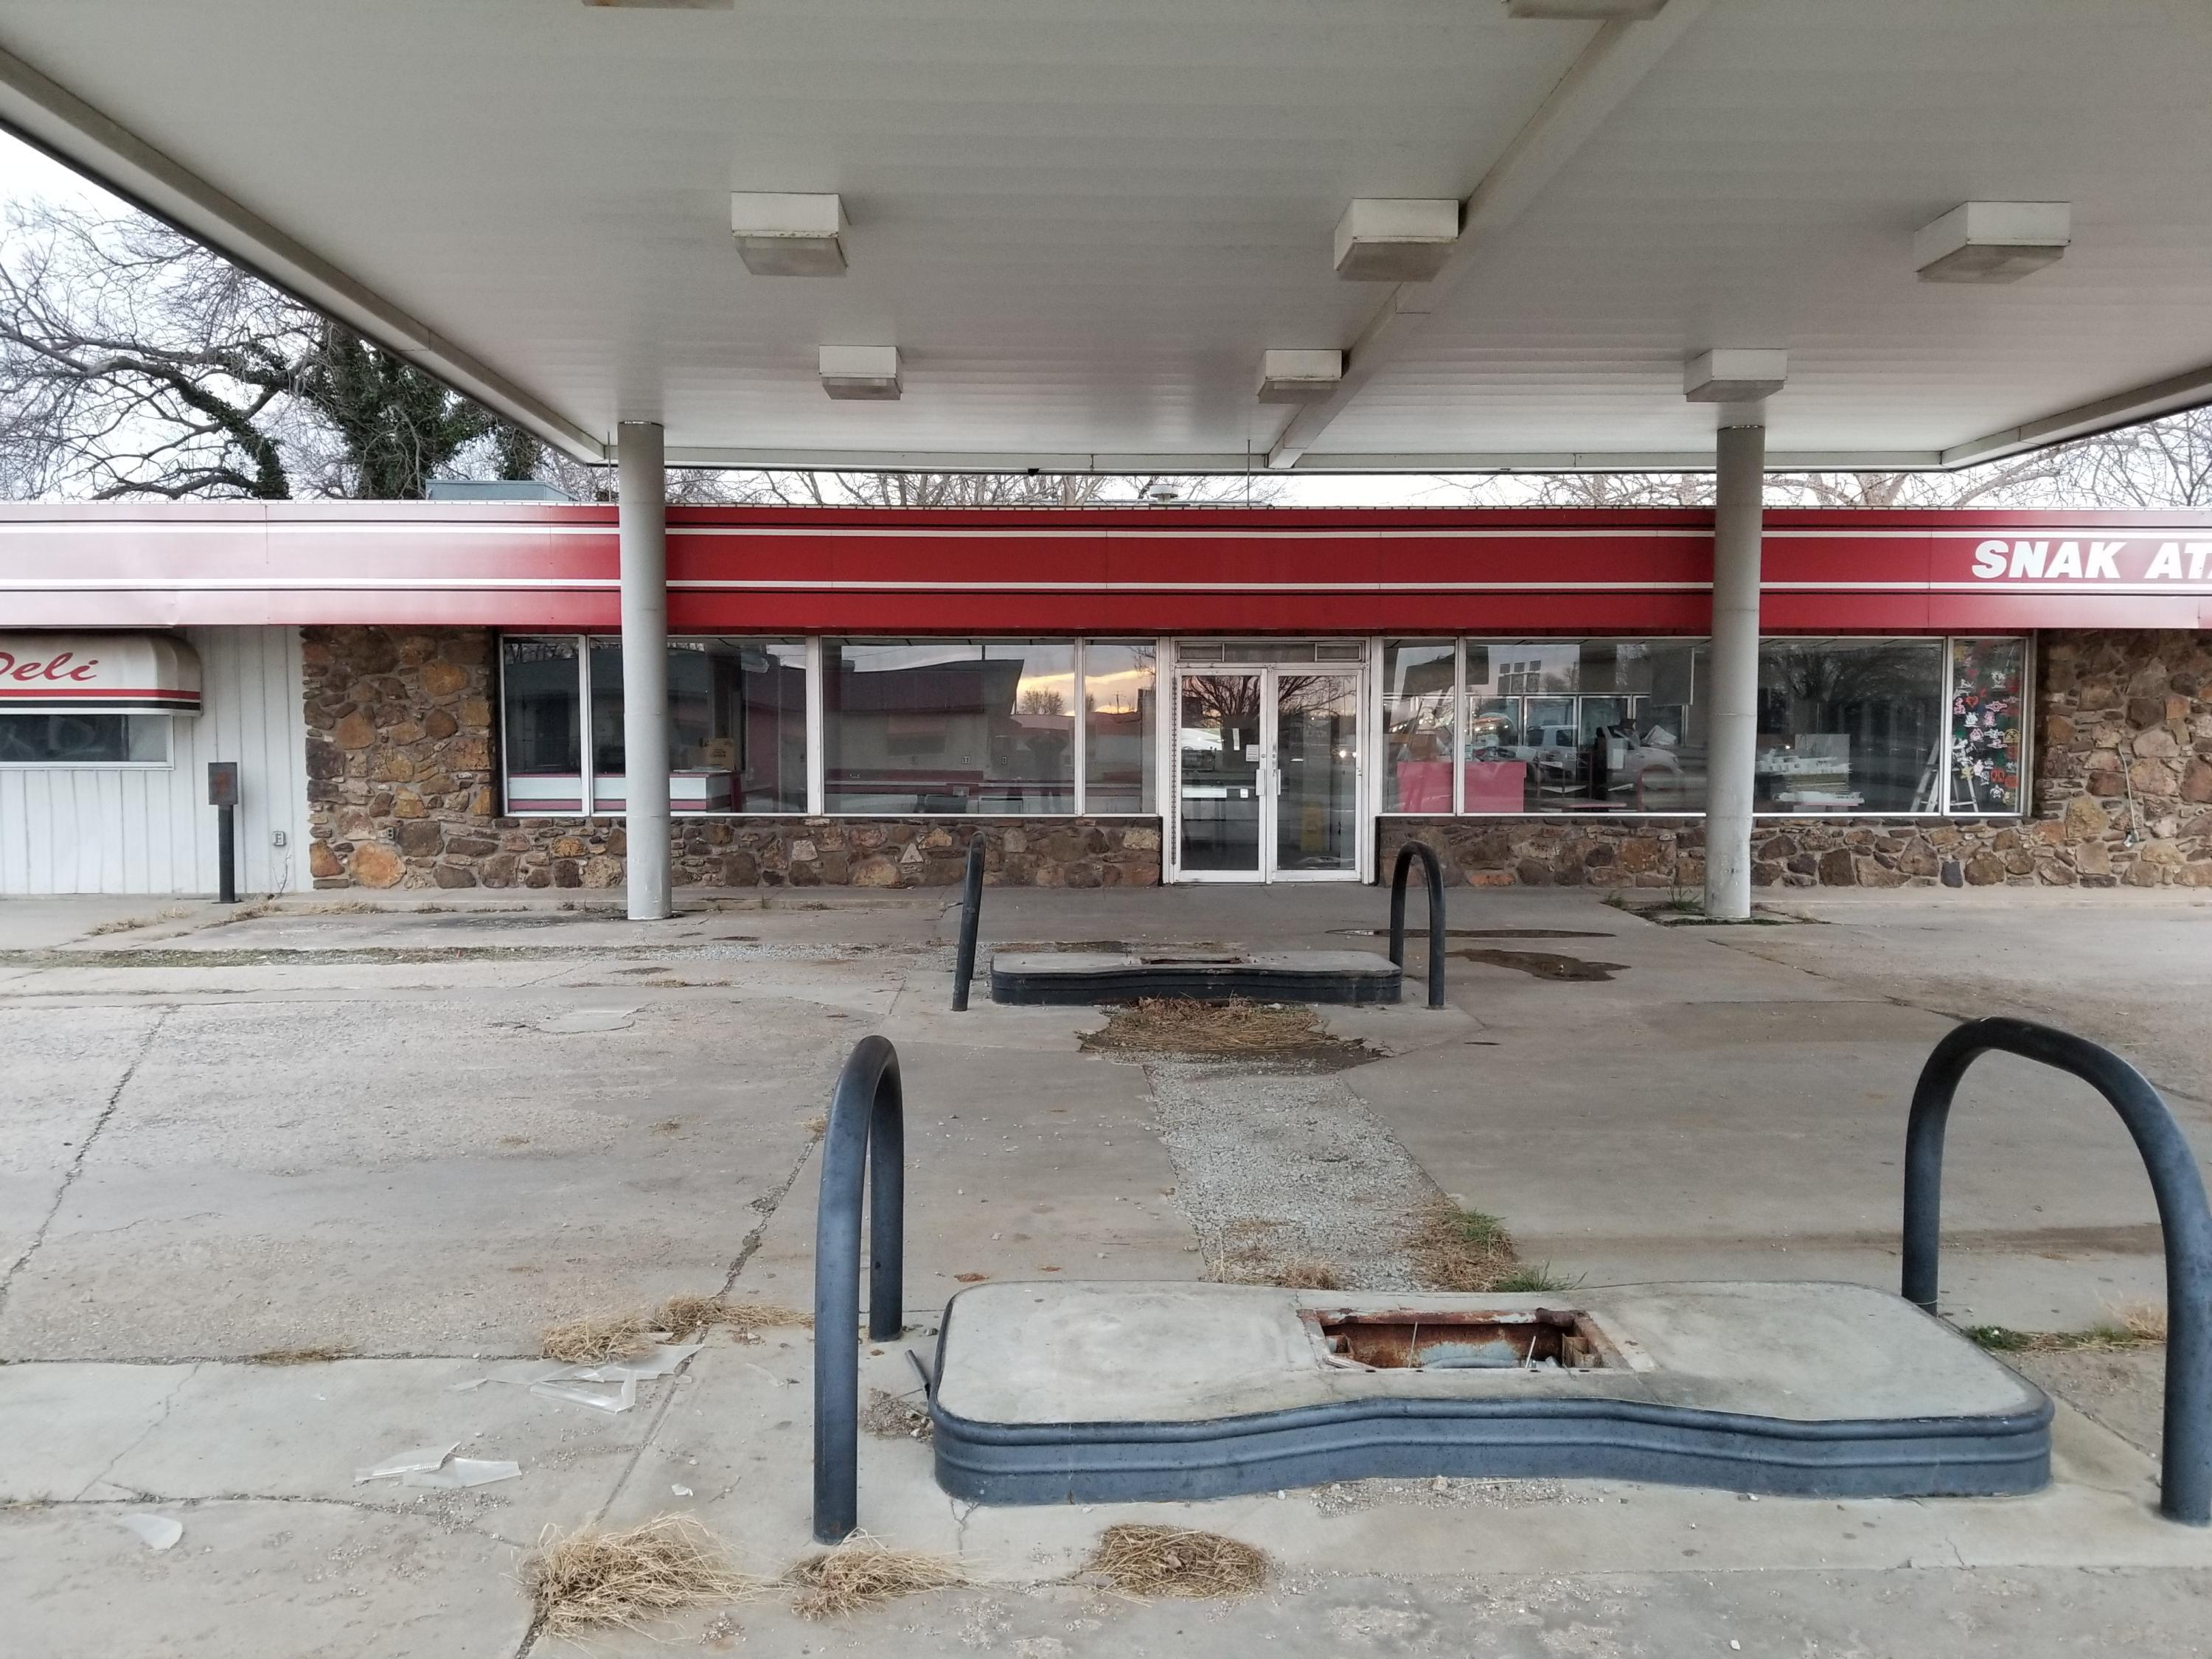 Closed | 422 W Conner Ave Fairland, OK 74343 0